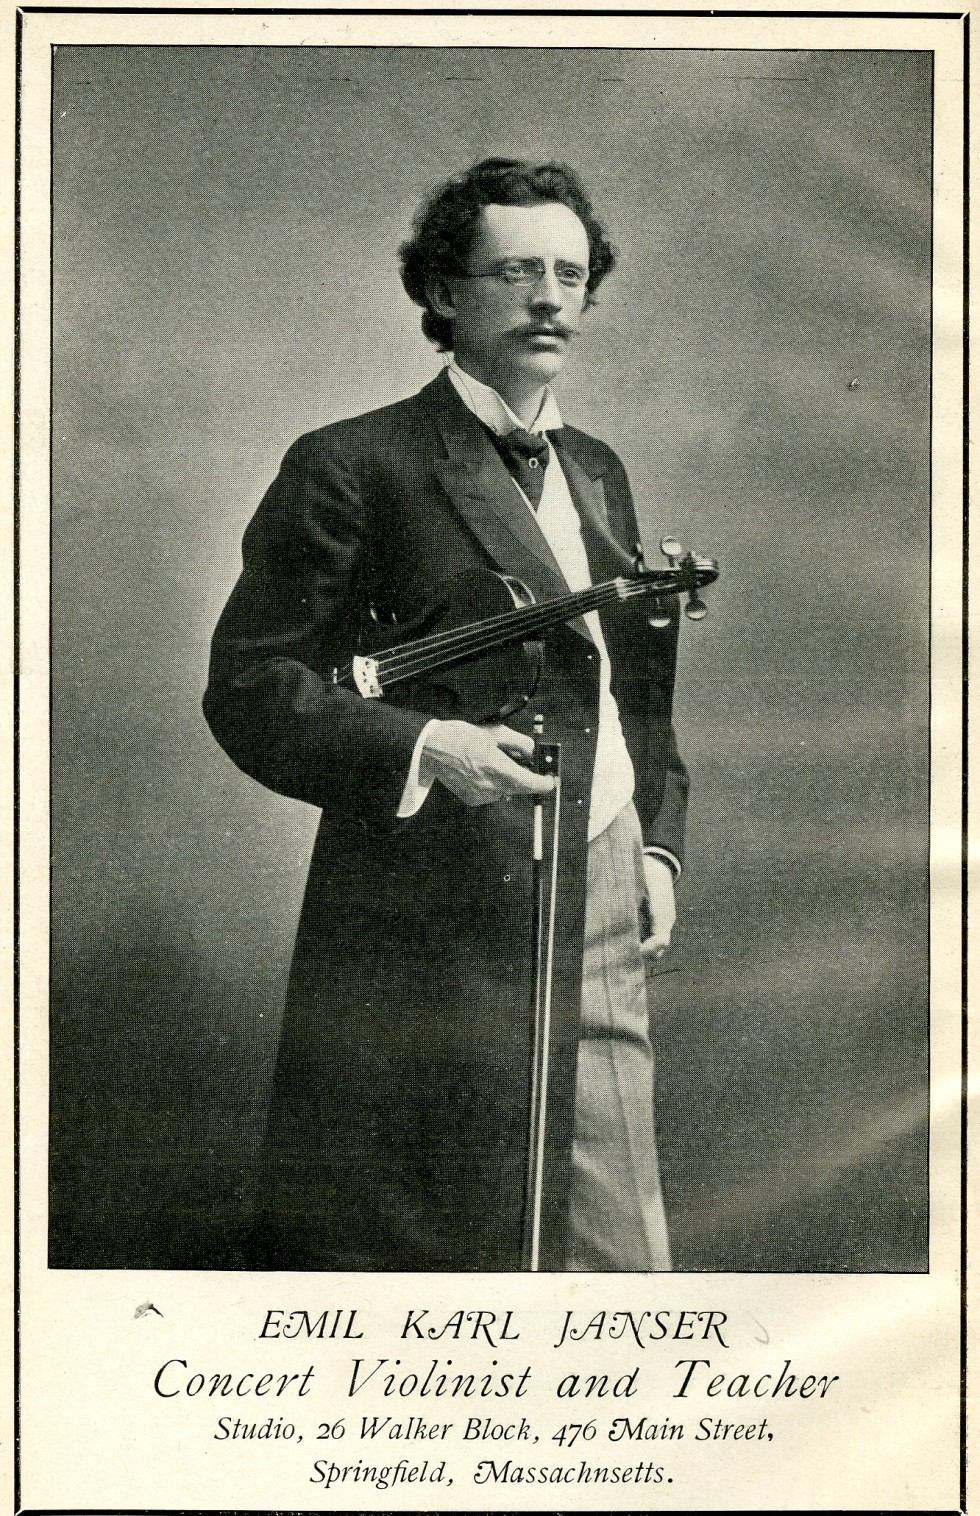 Emil Karl Janser, Concert violinist and Teacher. This photo was taken in 1904.